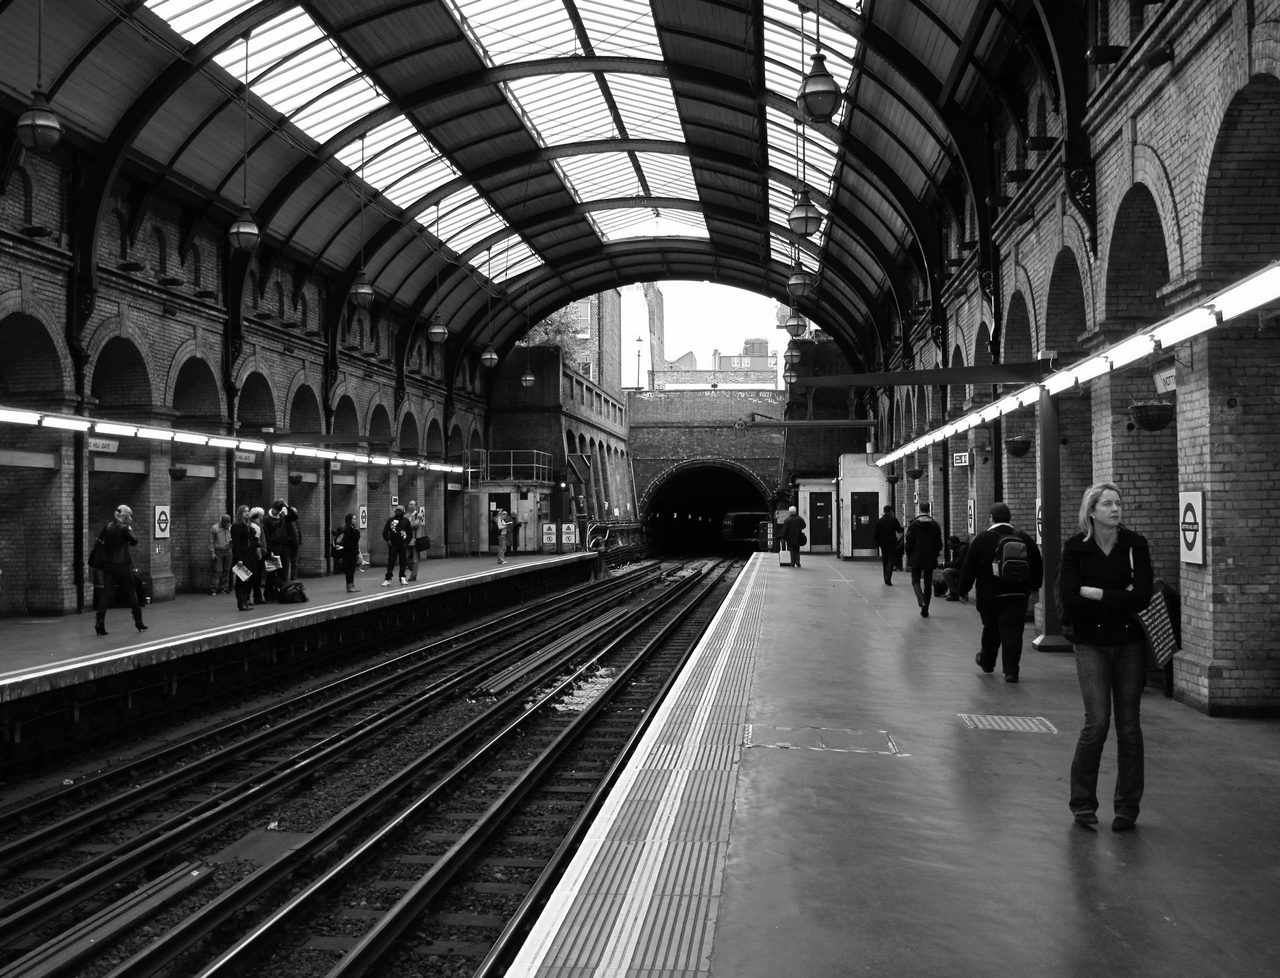 Notting Hill Tube Station by Smaragd01